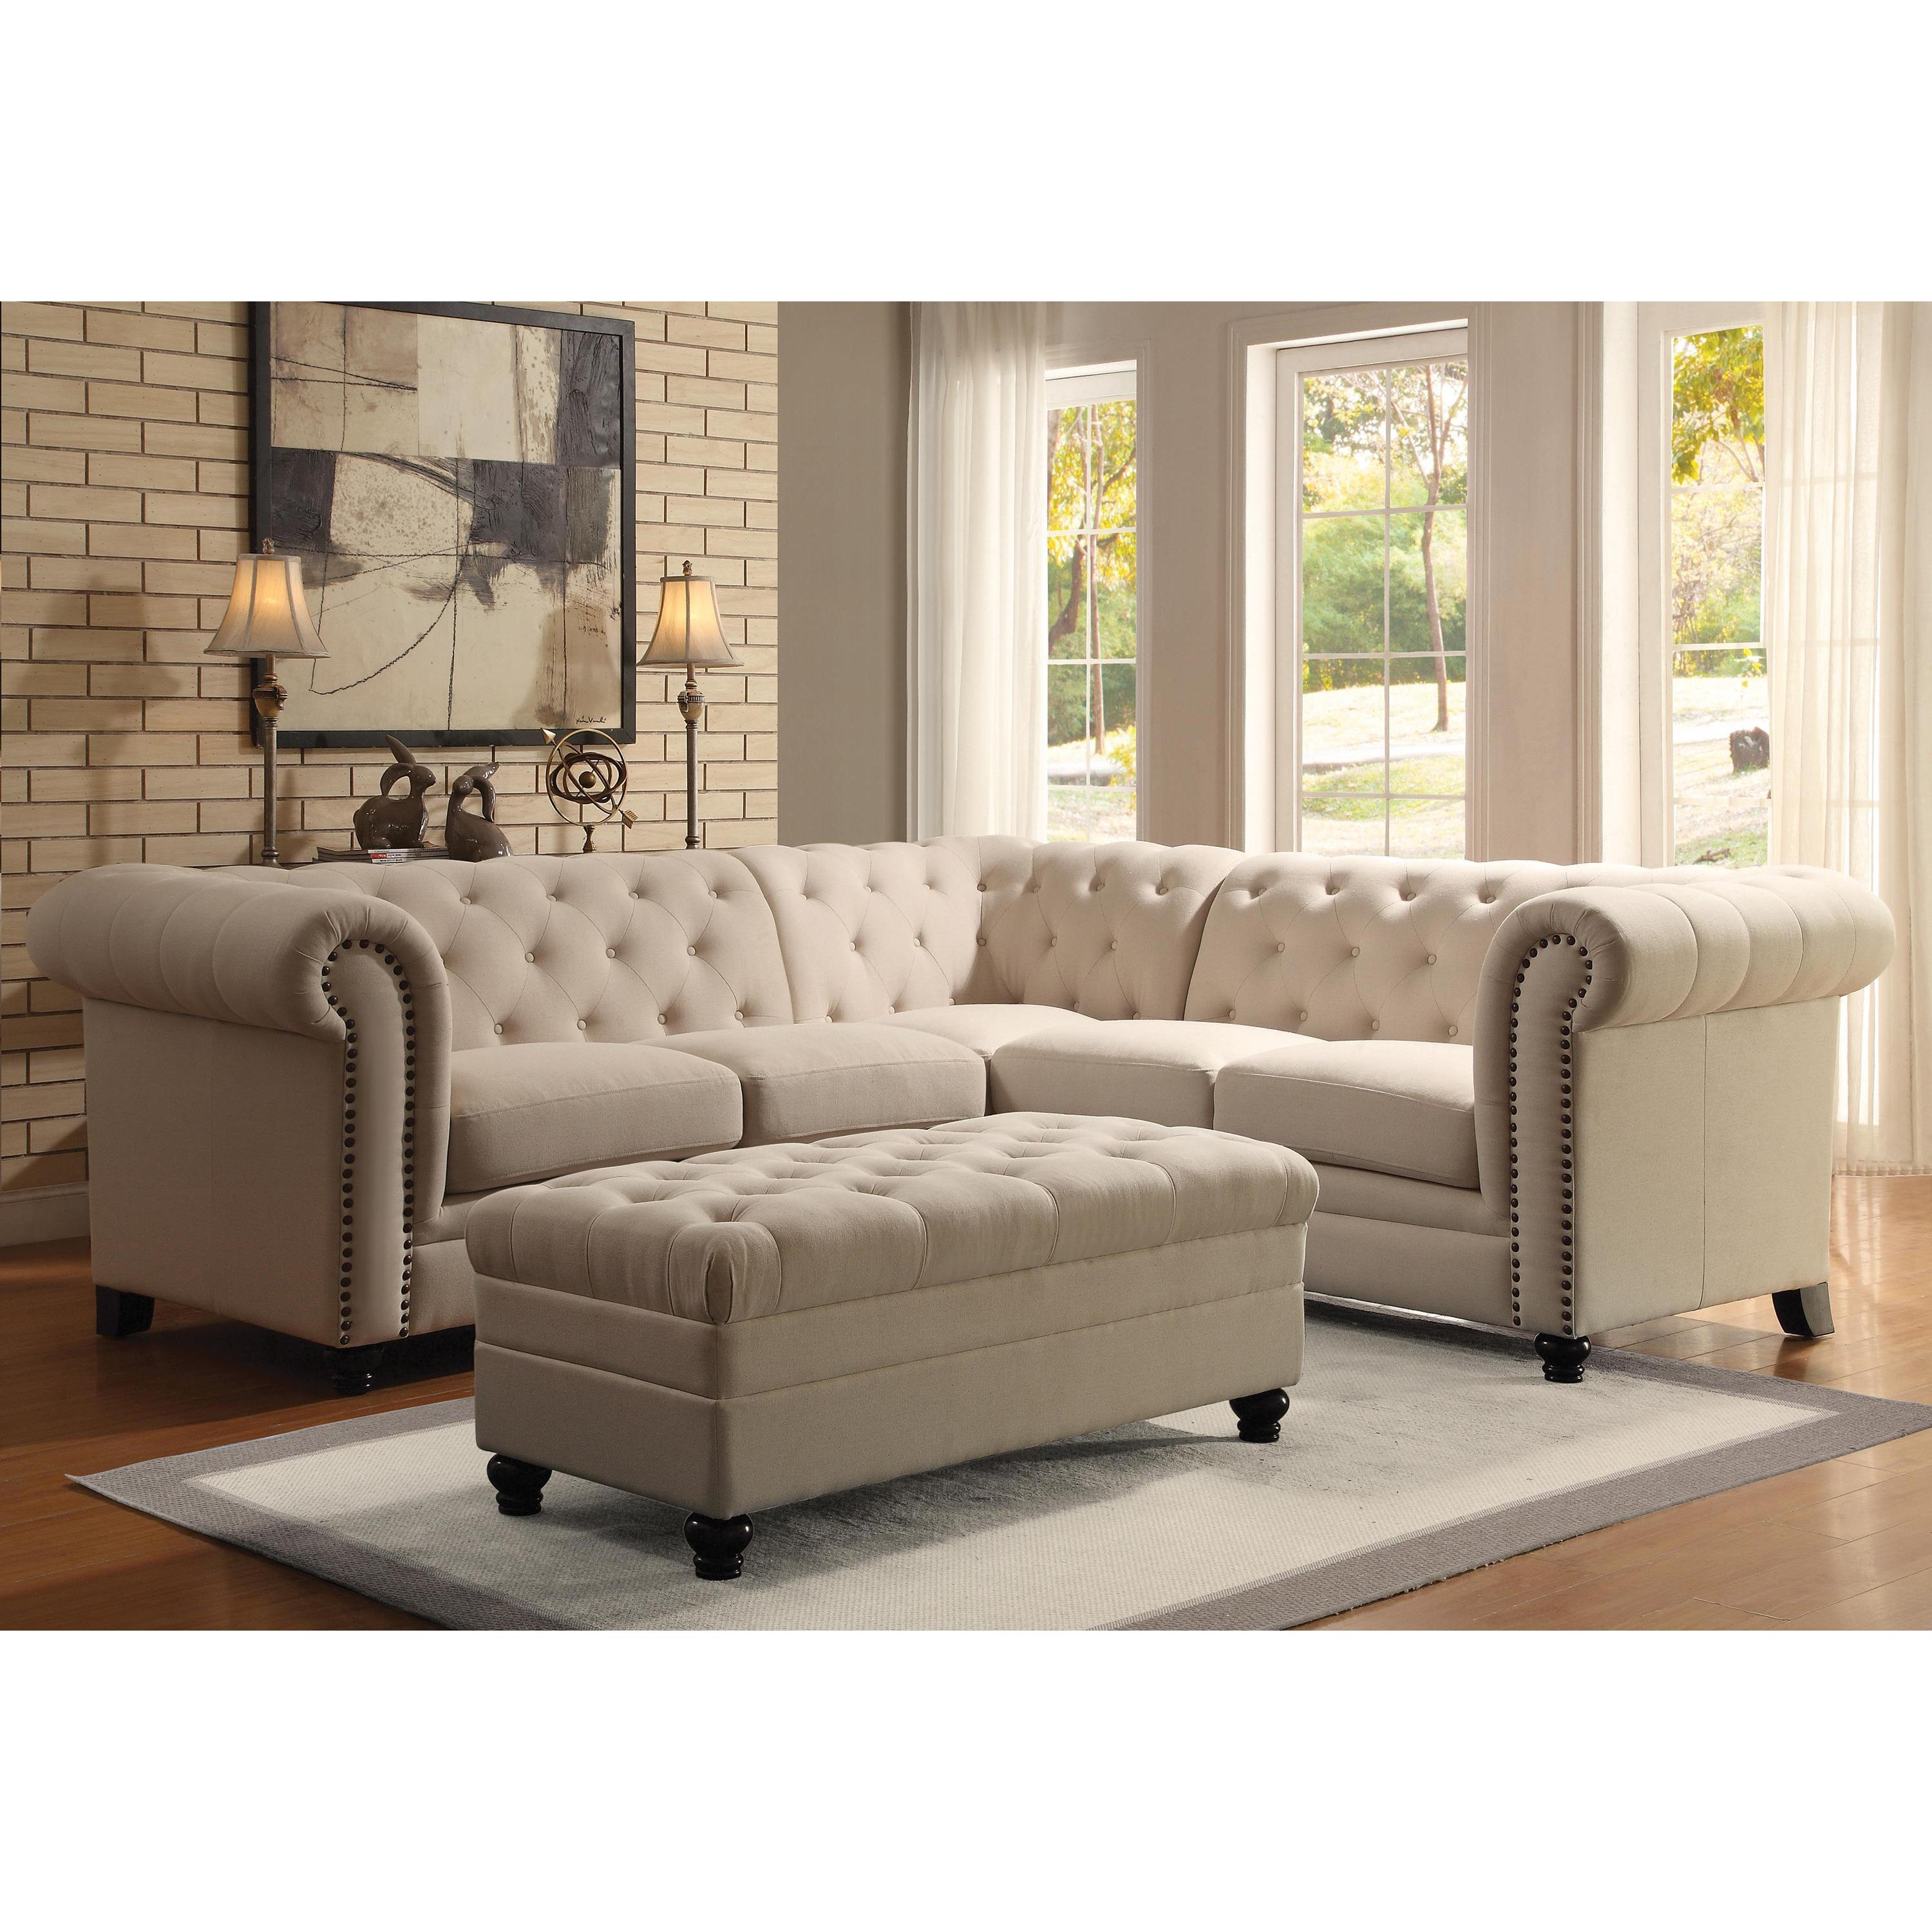 Sofa For Small Living Room Royal Mid Century Button Tufted Design Living Room Sectional Sofa With Decorative Nailhead Trim